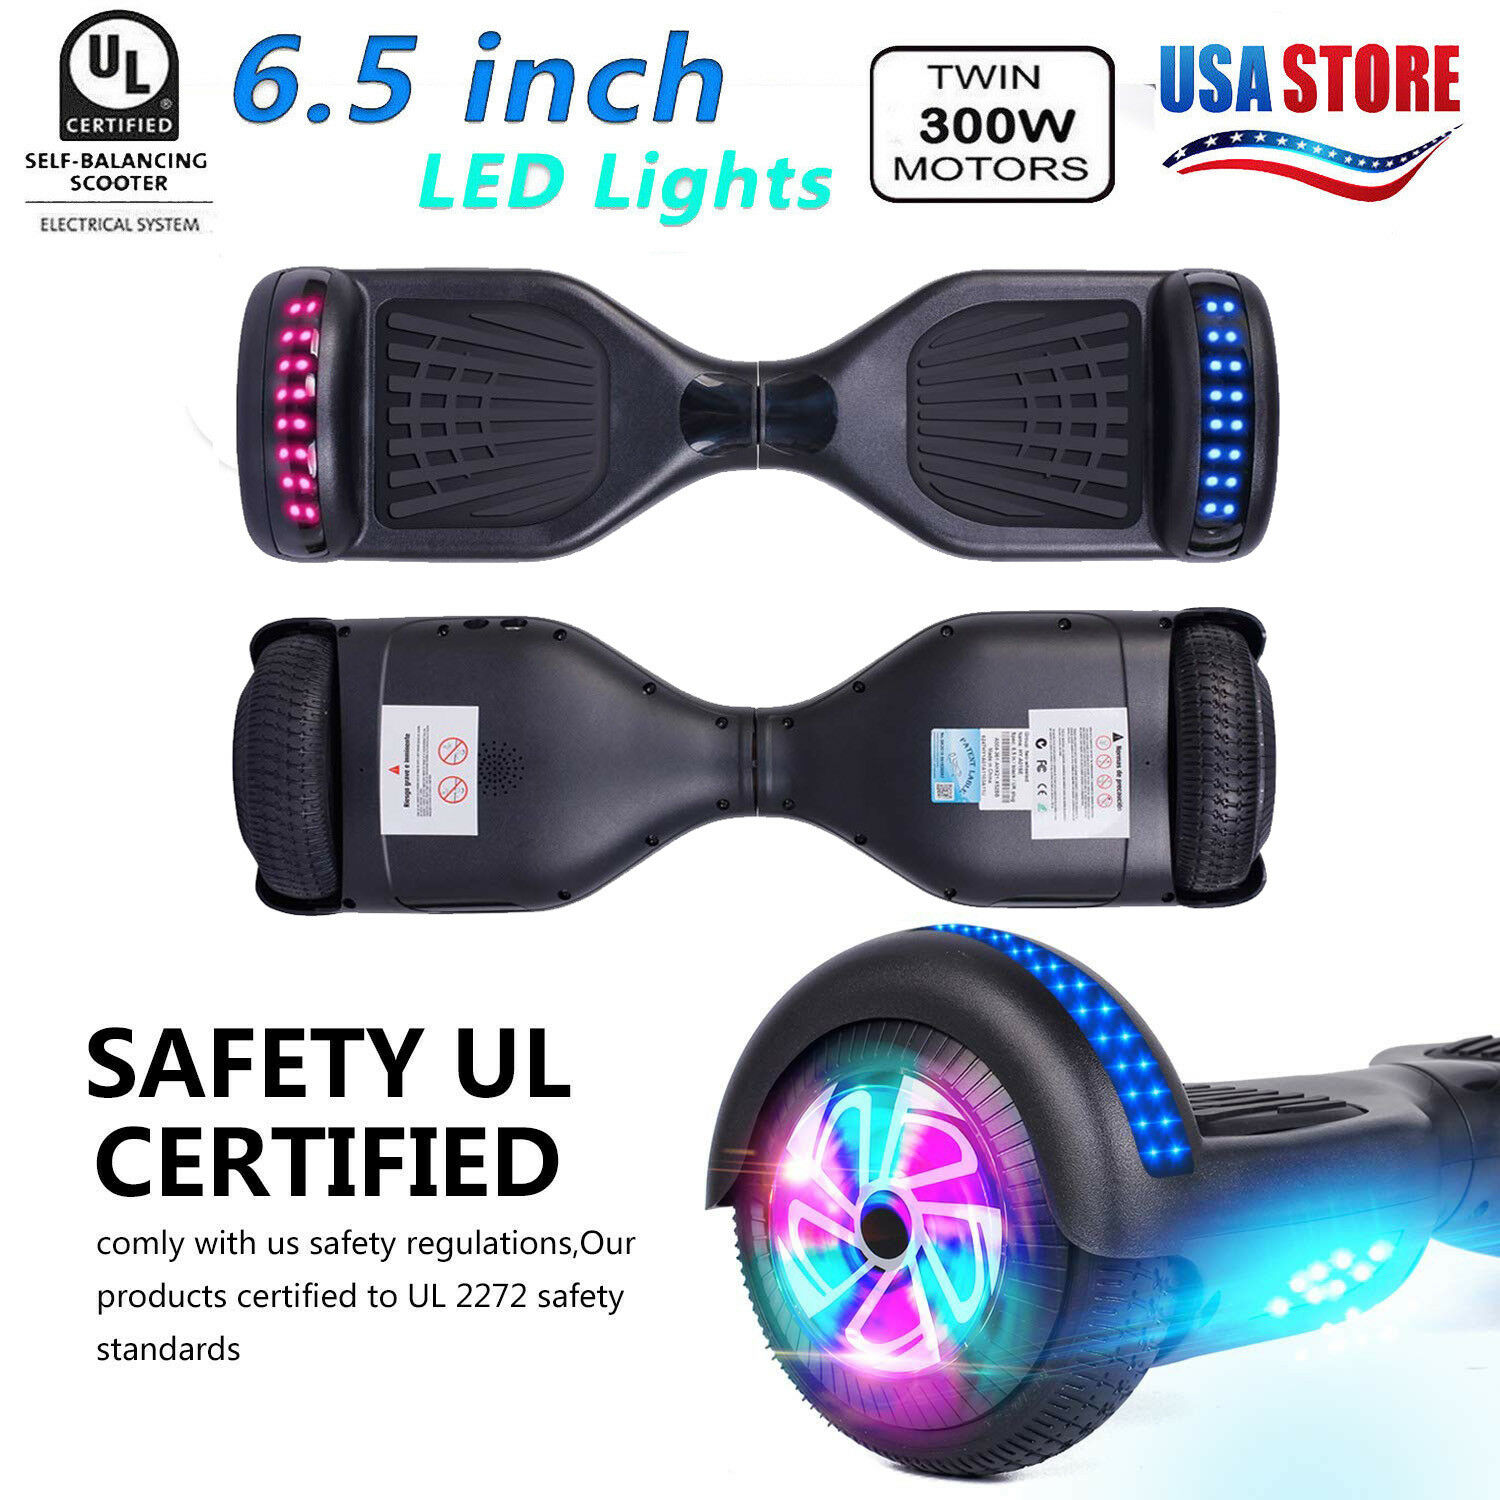 All terrain Hoverboard Power board Hoverheart ul2272 Self Balancing Scooter Gift